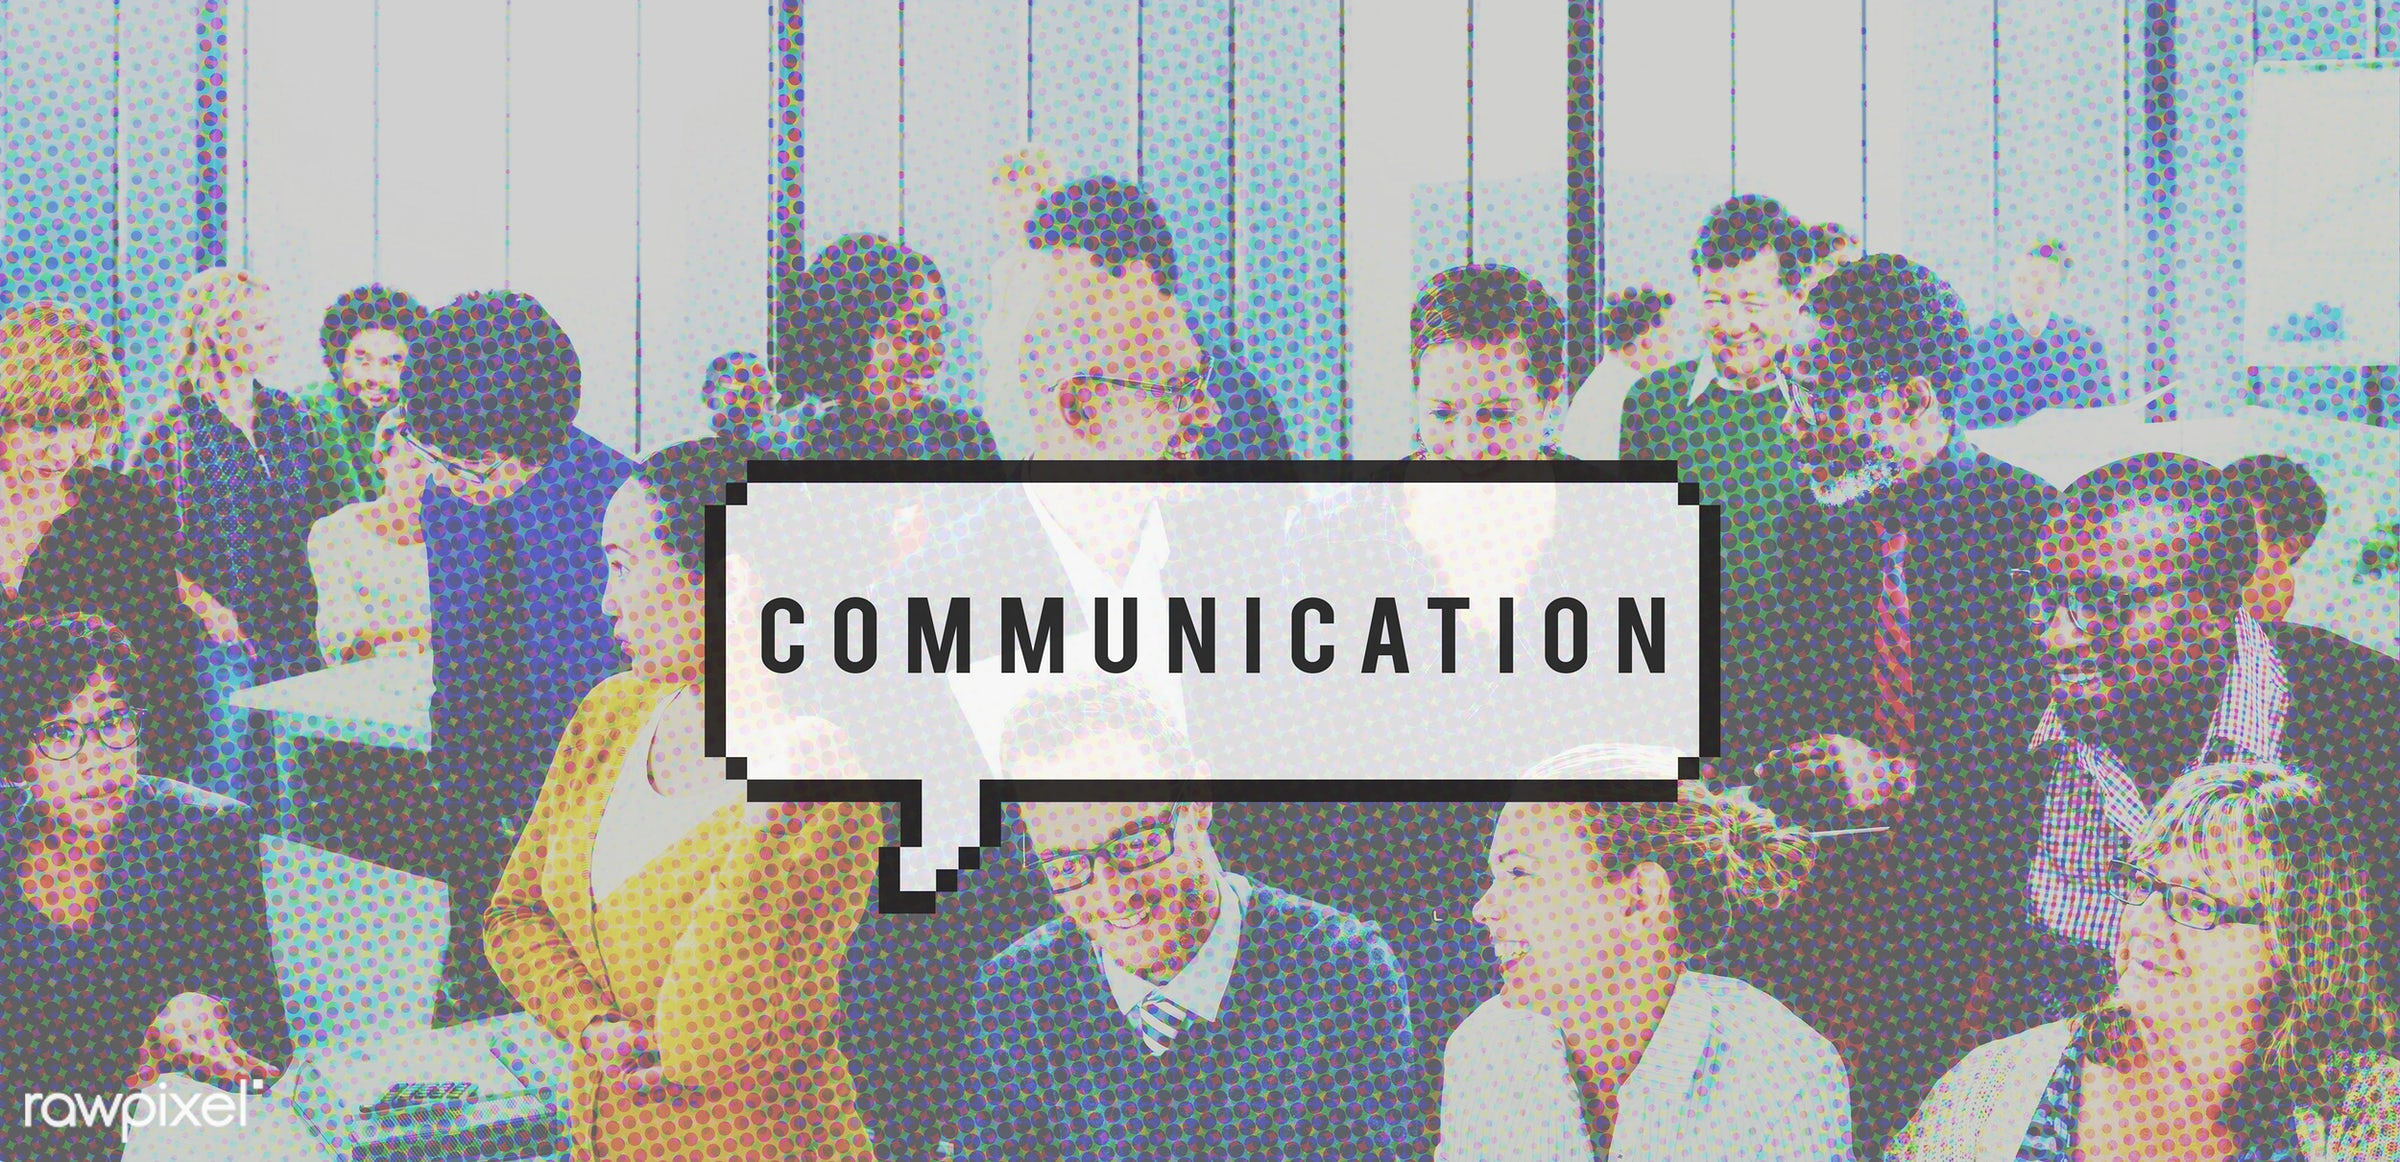 african descent, asian ethnicity, business, businessmen, businesswomen, busy, communicate, communication, community, connect...